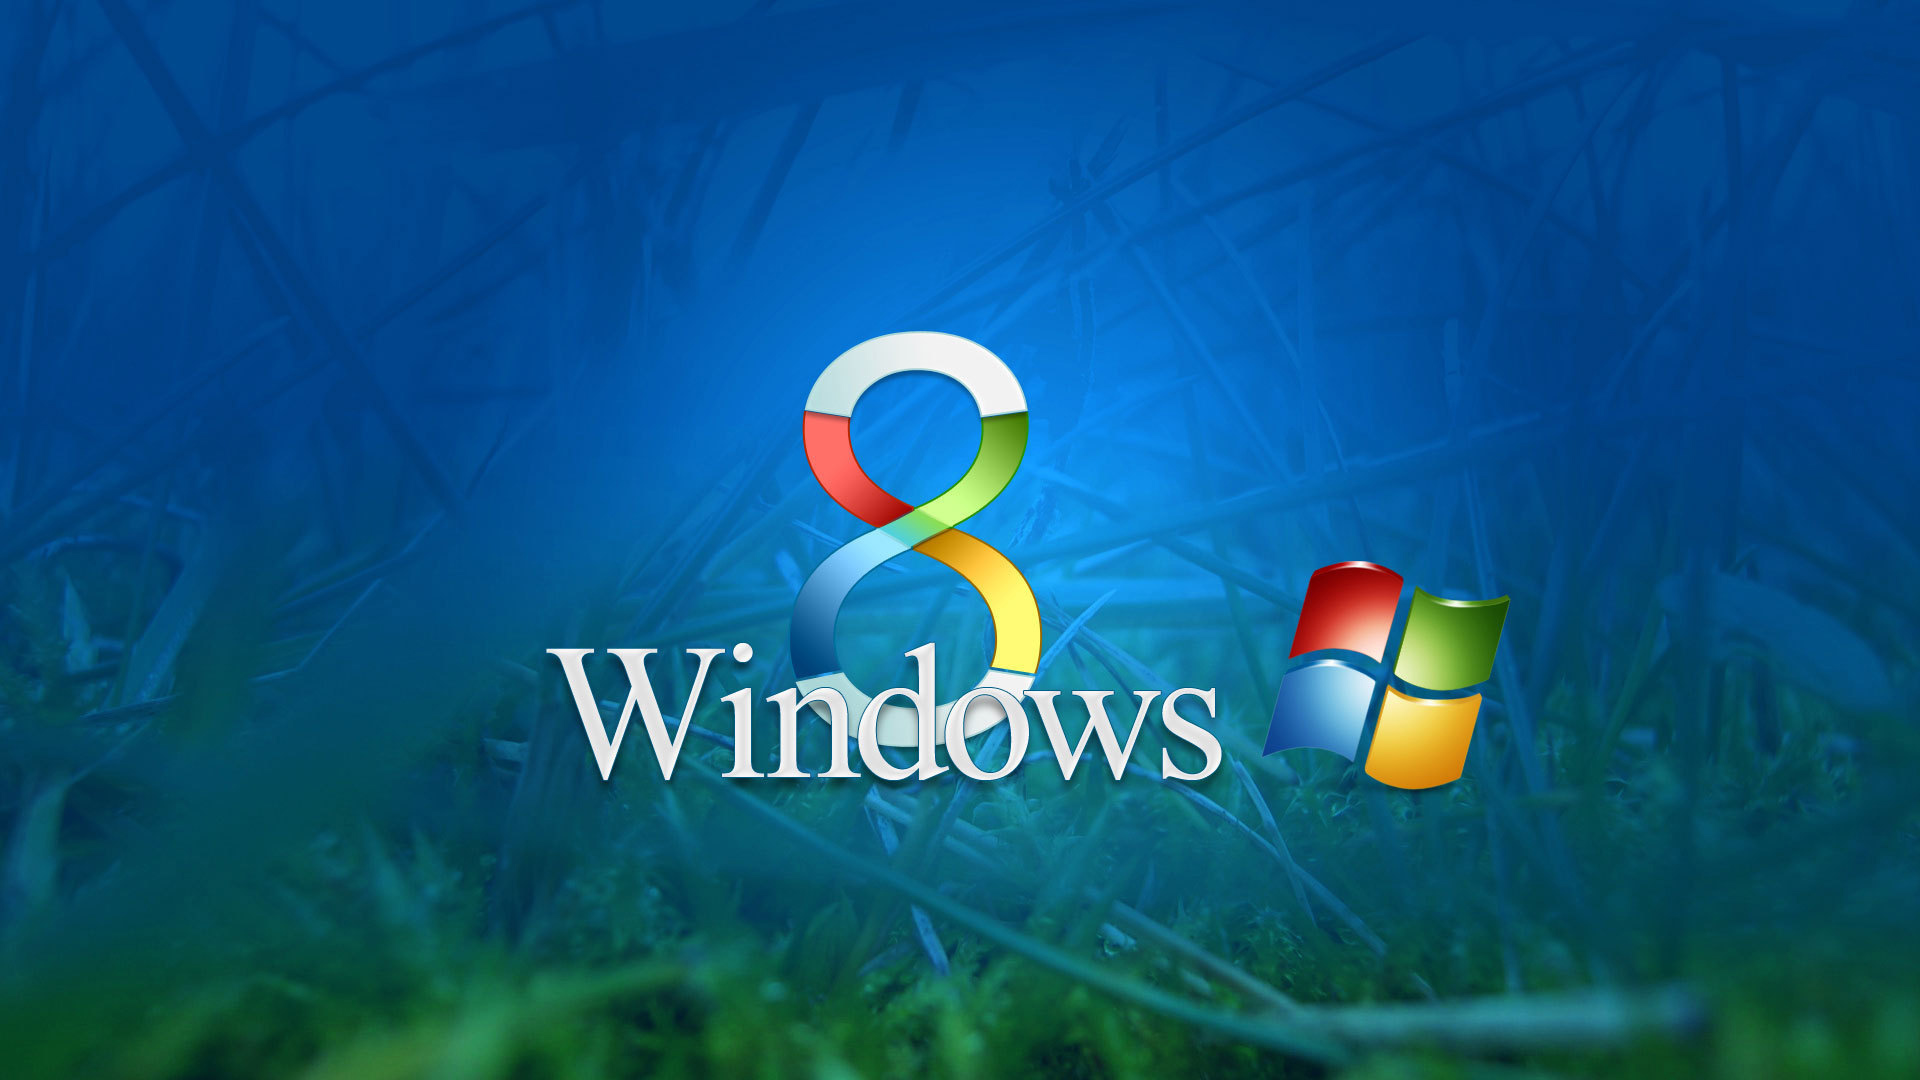 Windows 8 Backgrounds   High resolution wallpapers for your PC 1920x1080